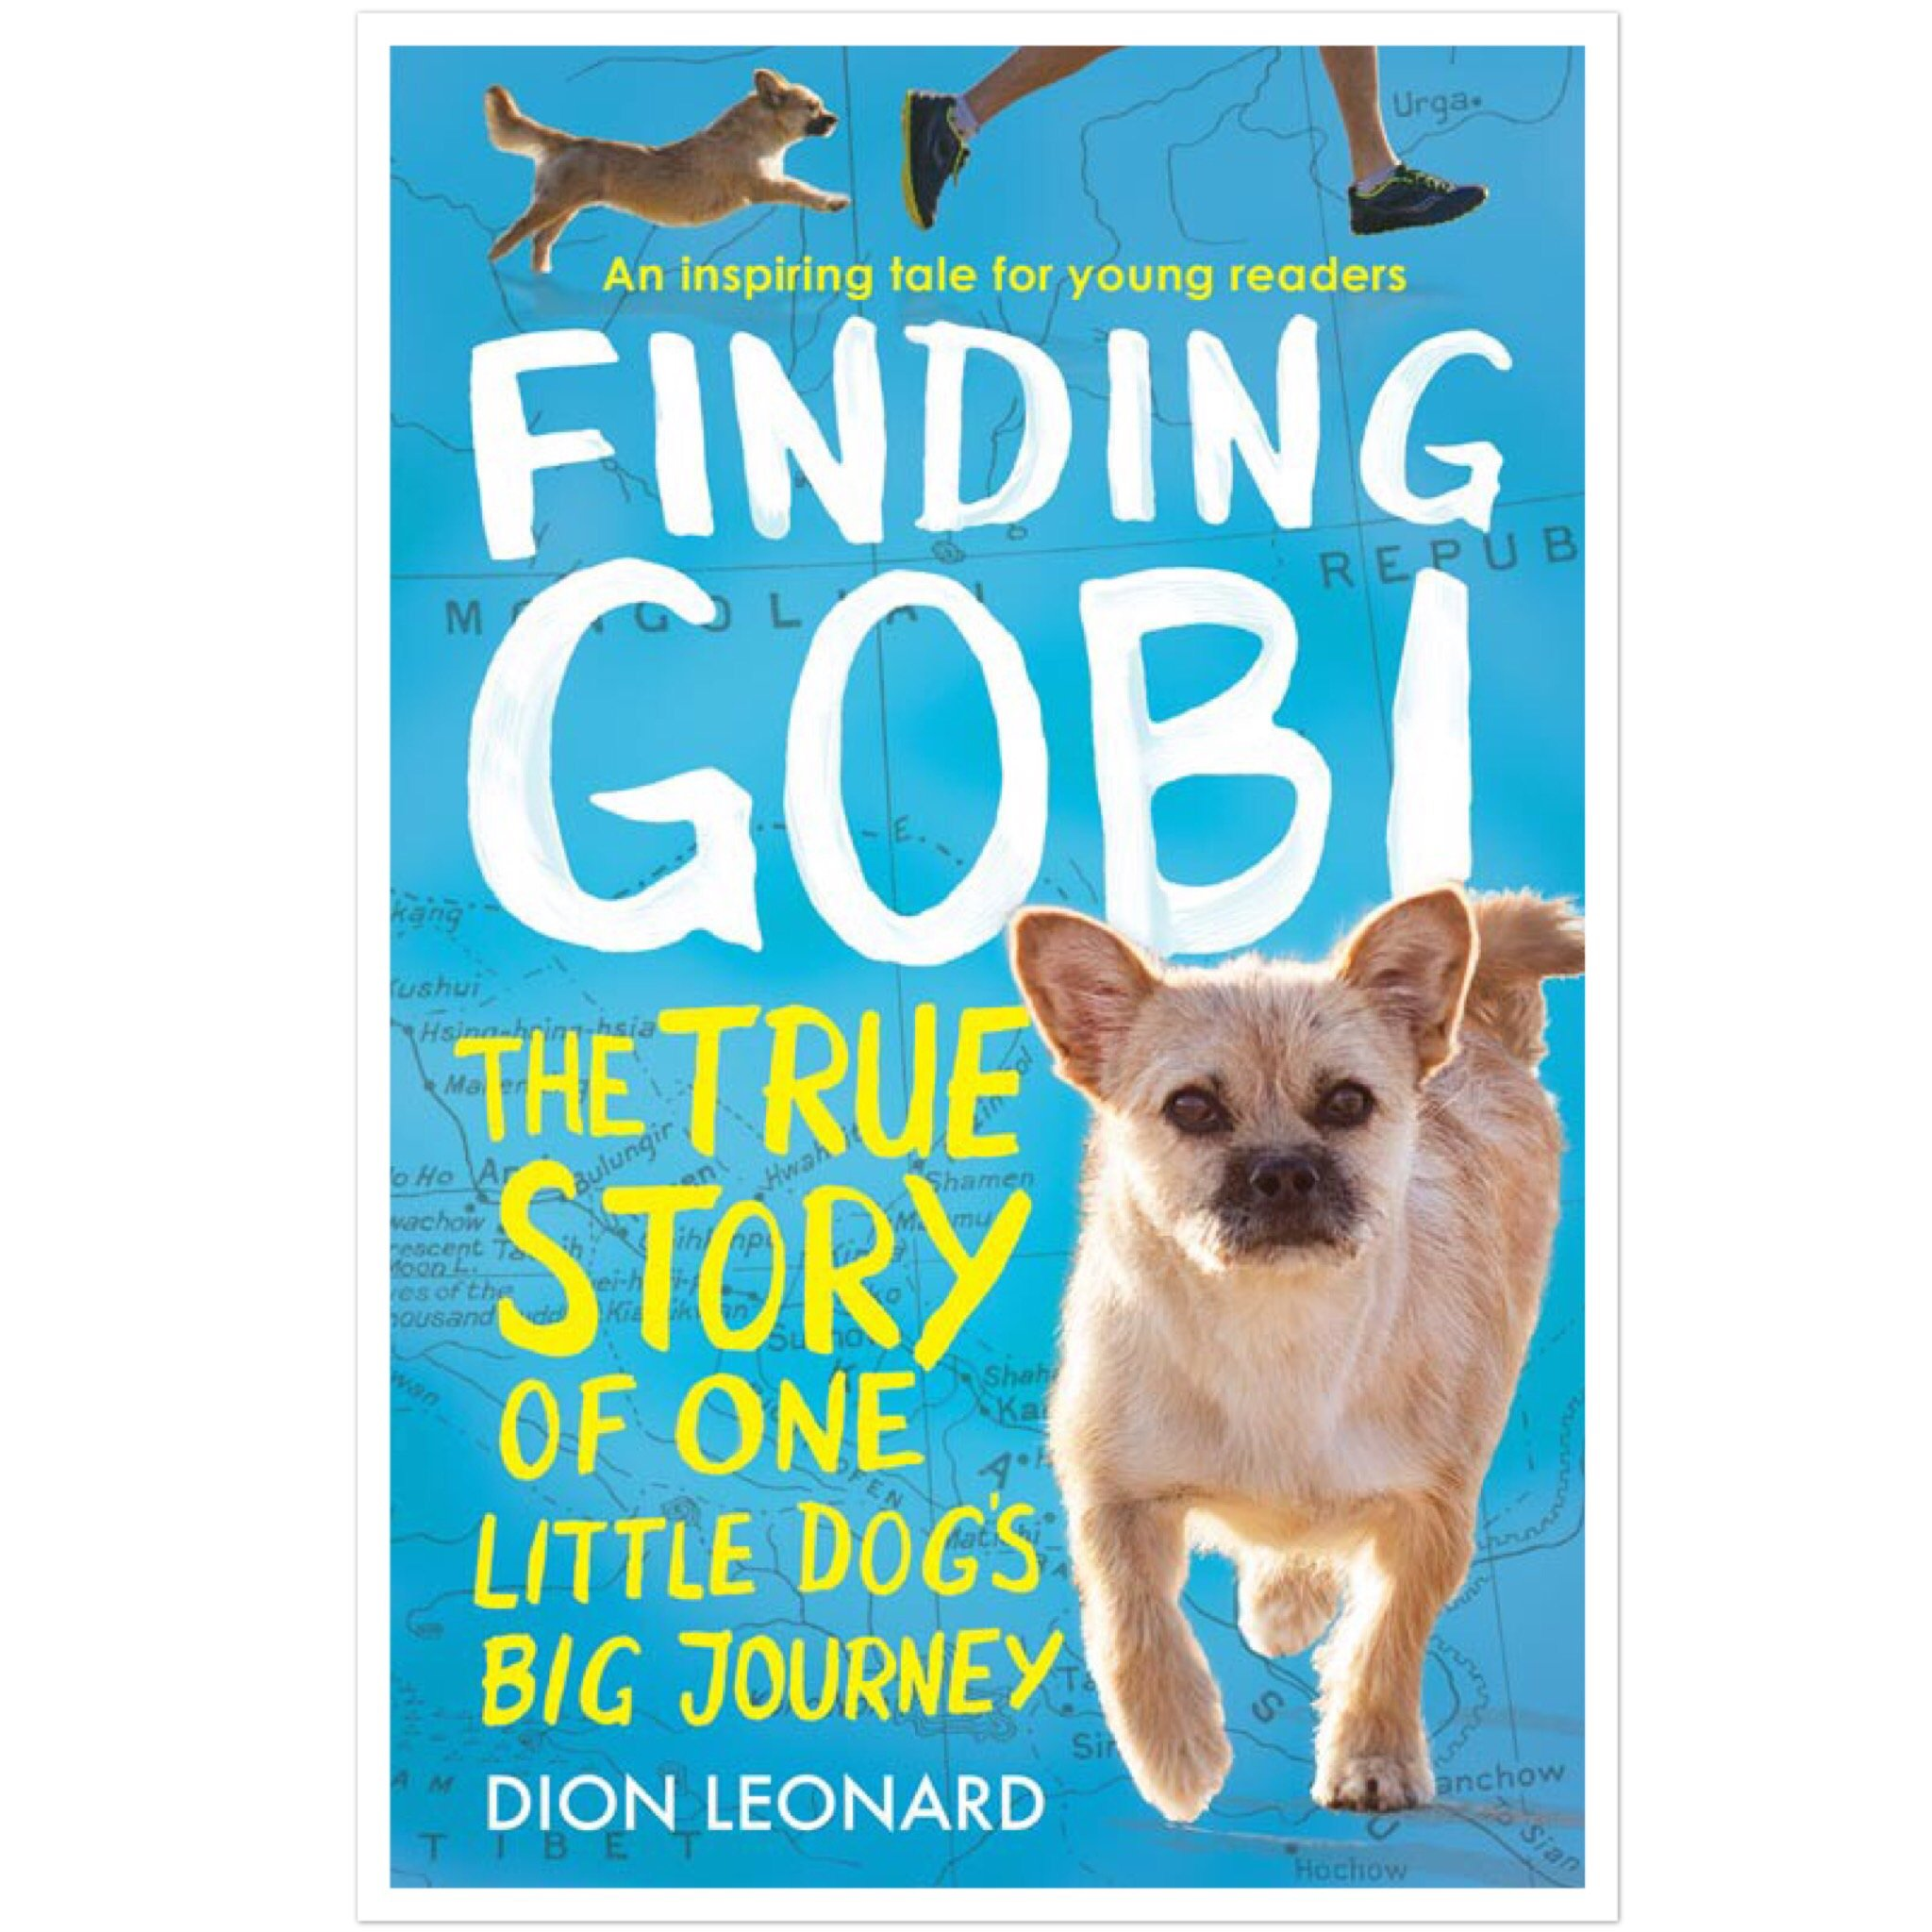 Finding Gobi Dion Leonard Young Readers Edition, The true story of one little dog's big journey, Dion Leonard, Tommy Nelson, W Publishing